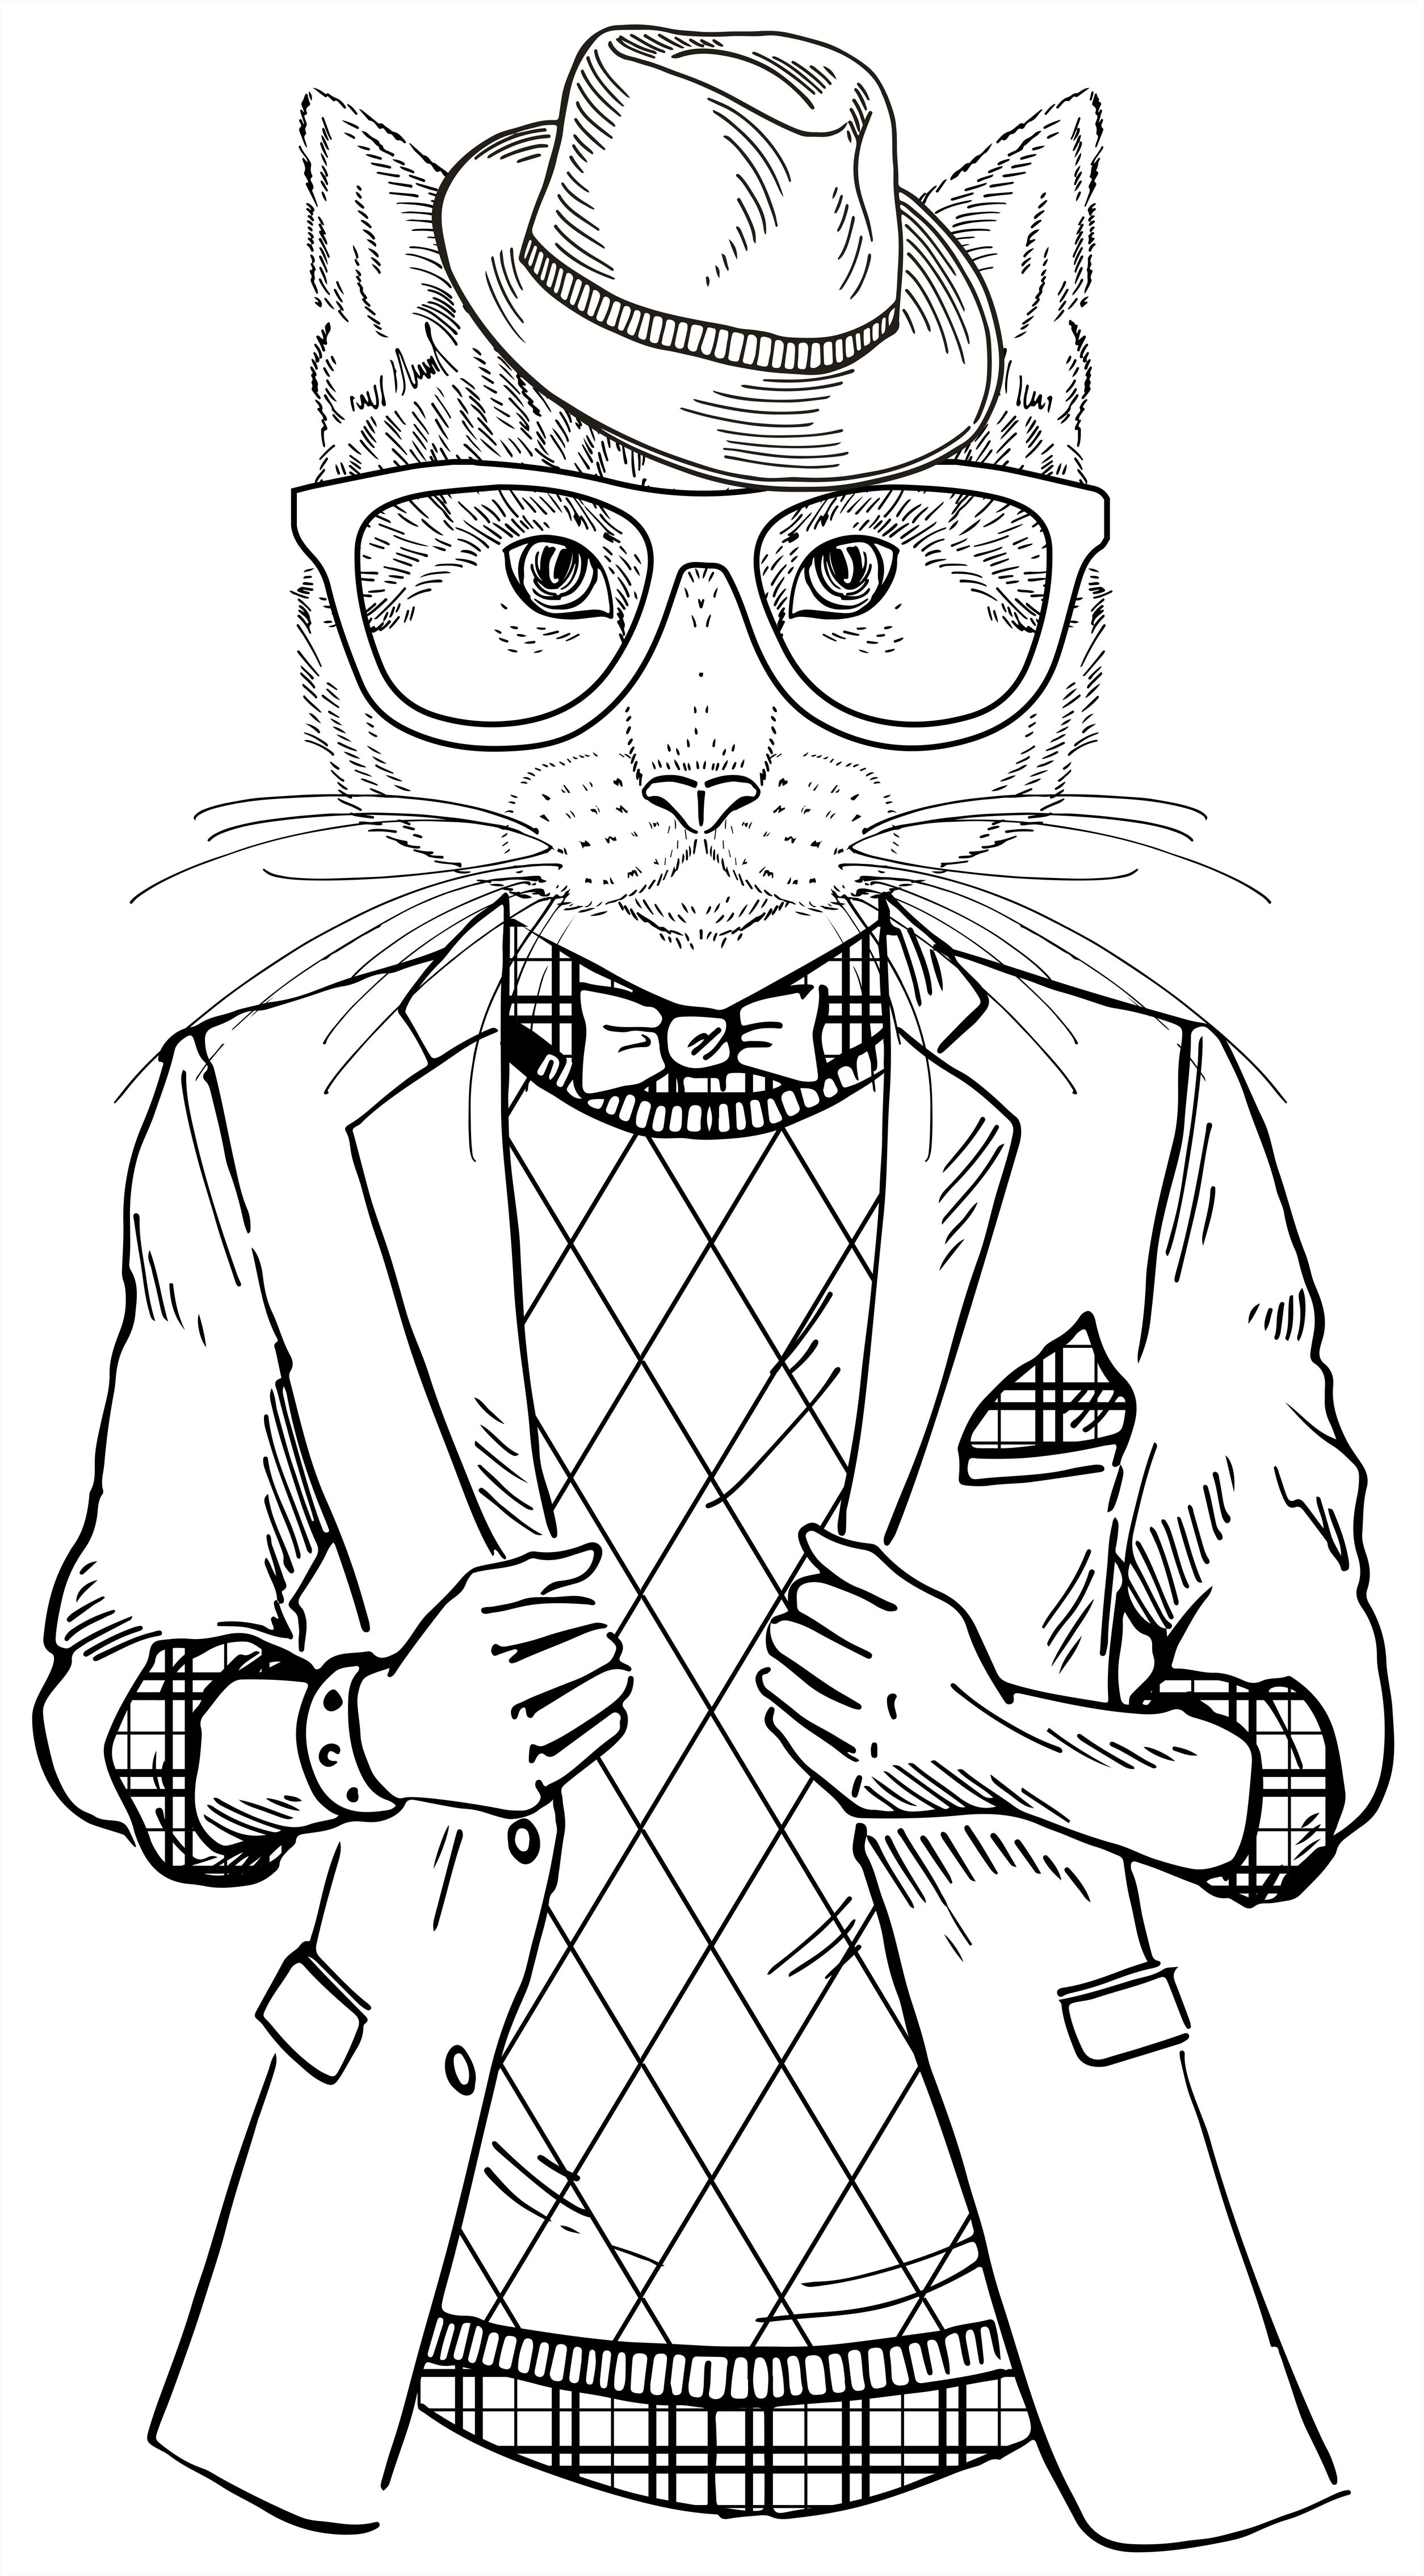 A Cool Cat From Smooth Operator